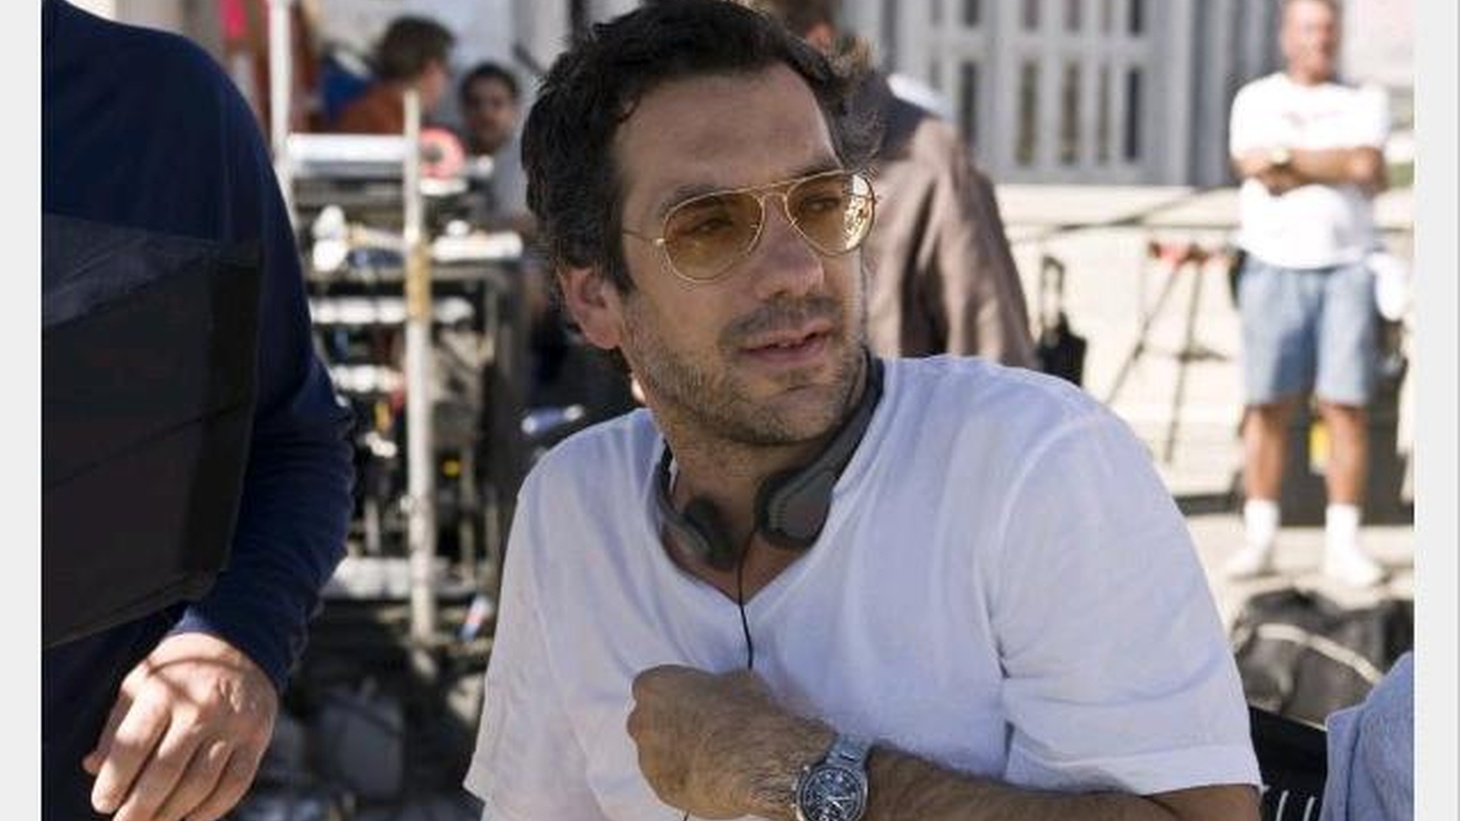 Director Todd Phillips (Starsky & Hutch, School for Scoundrels, All The King's Men) has a gift for finding guys who have to show the worst side of themselves. He's revealed them both in documentaries and fiction films, like his newest The Hangover.